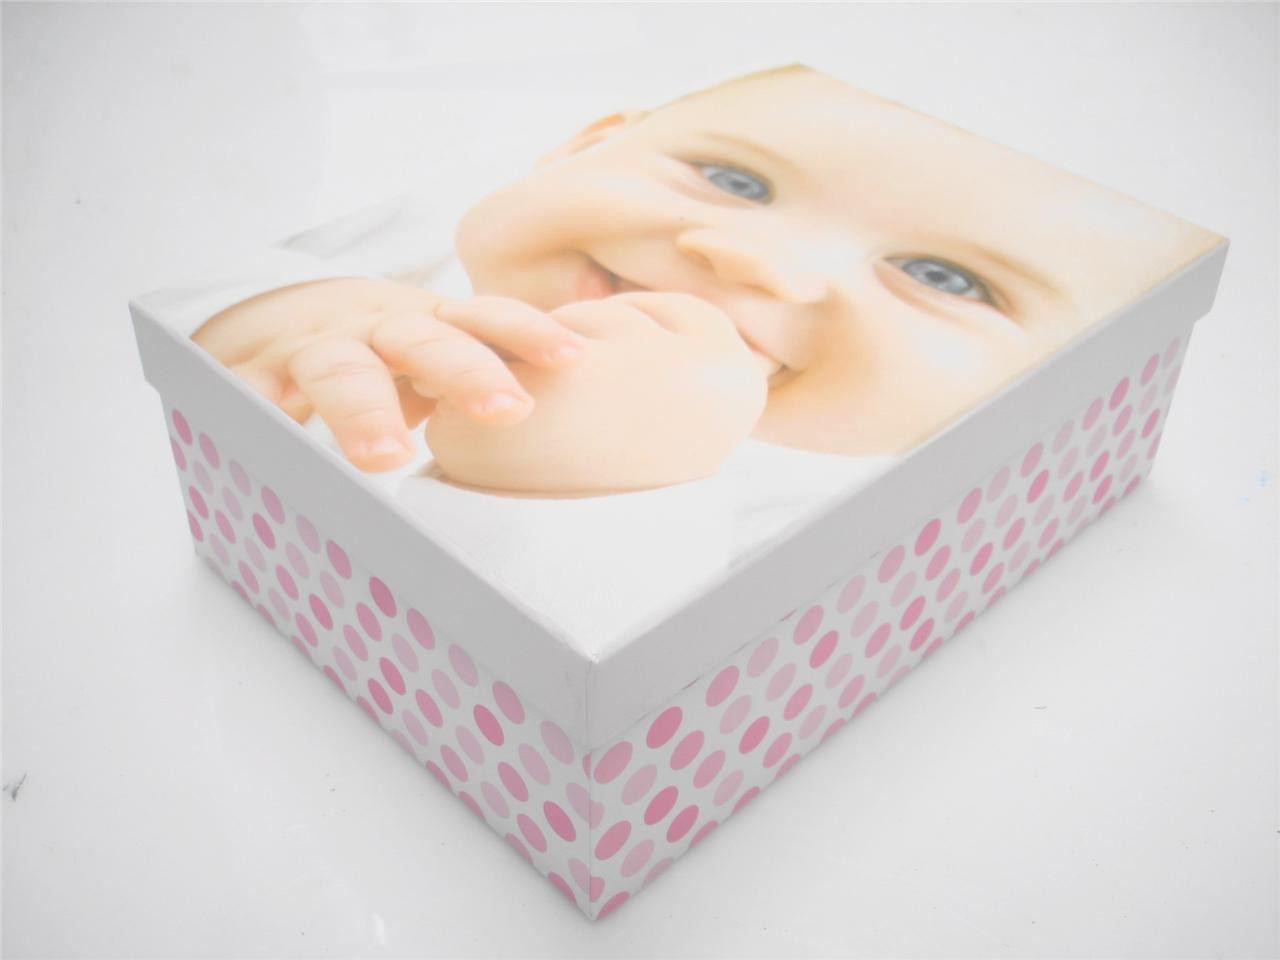 ... Boy Girl Hard Cardboard A4 Storage Boxes Kids Birthday Gift Box | eBay